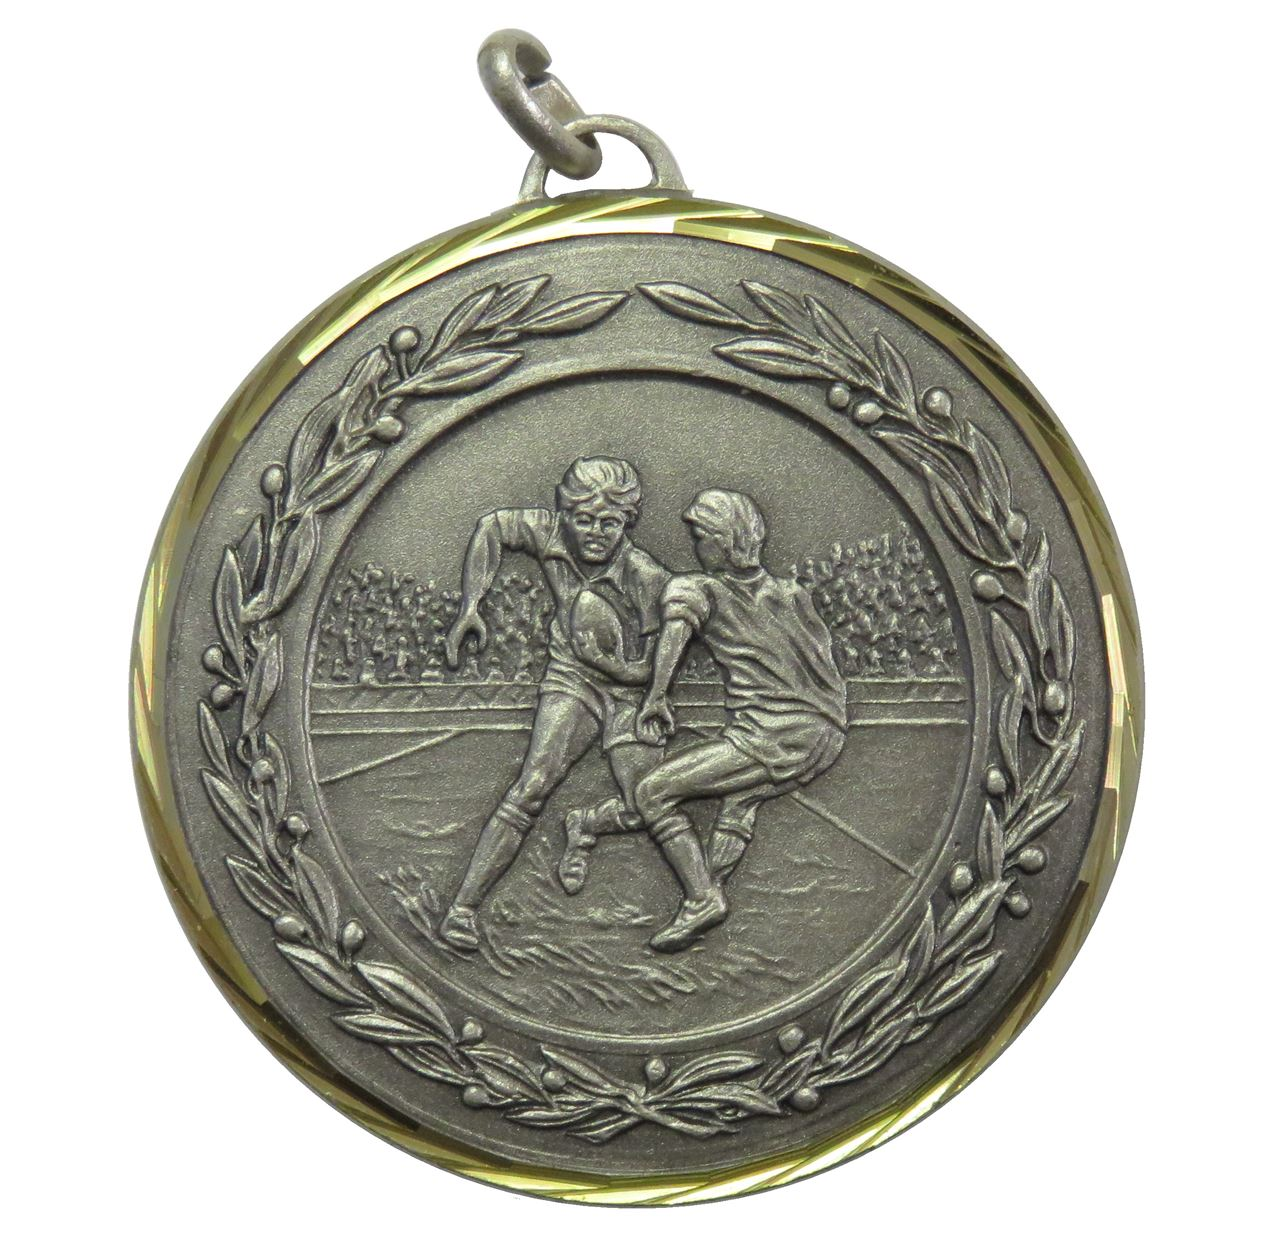 Silver Premium Classic Rugby Medal (size: 50mm) - 4281F